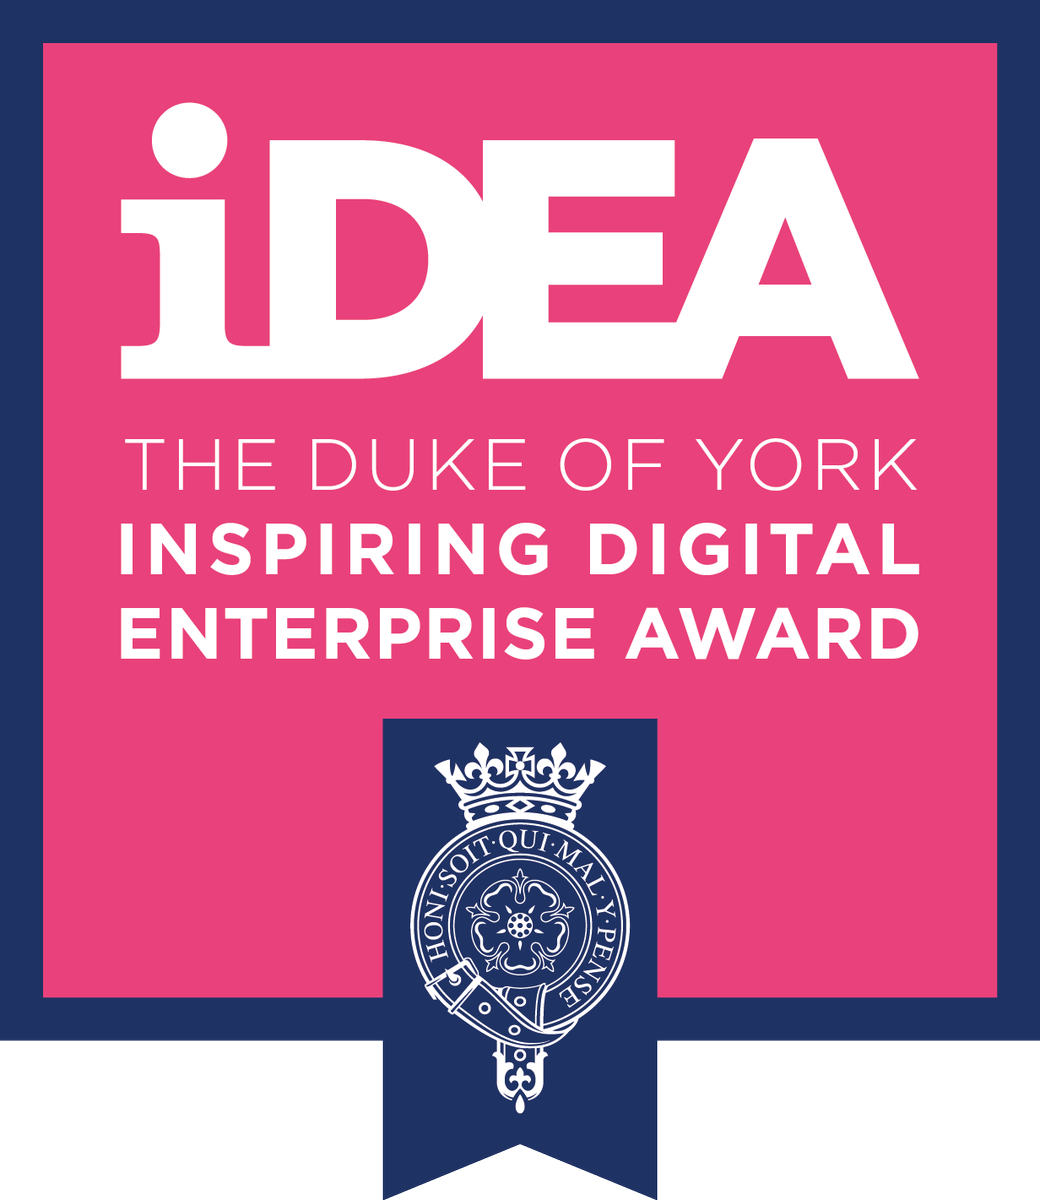 Small Business Saturday are partnering with @idea_award to bring you free online training and community support for entrepreneurs - get involved #smallidea @smallbizsatuk @TheDukeOfYork smallbusinesssaturdayuk.com/iDEA